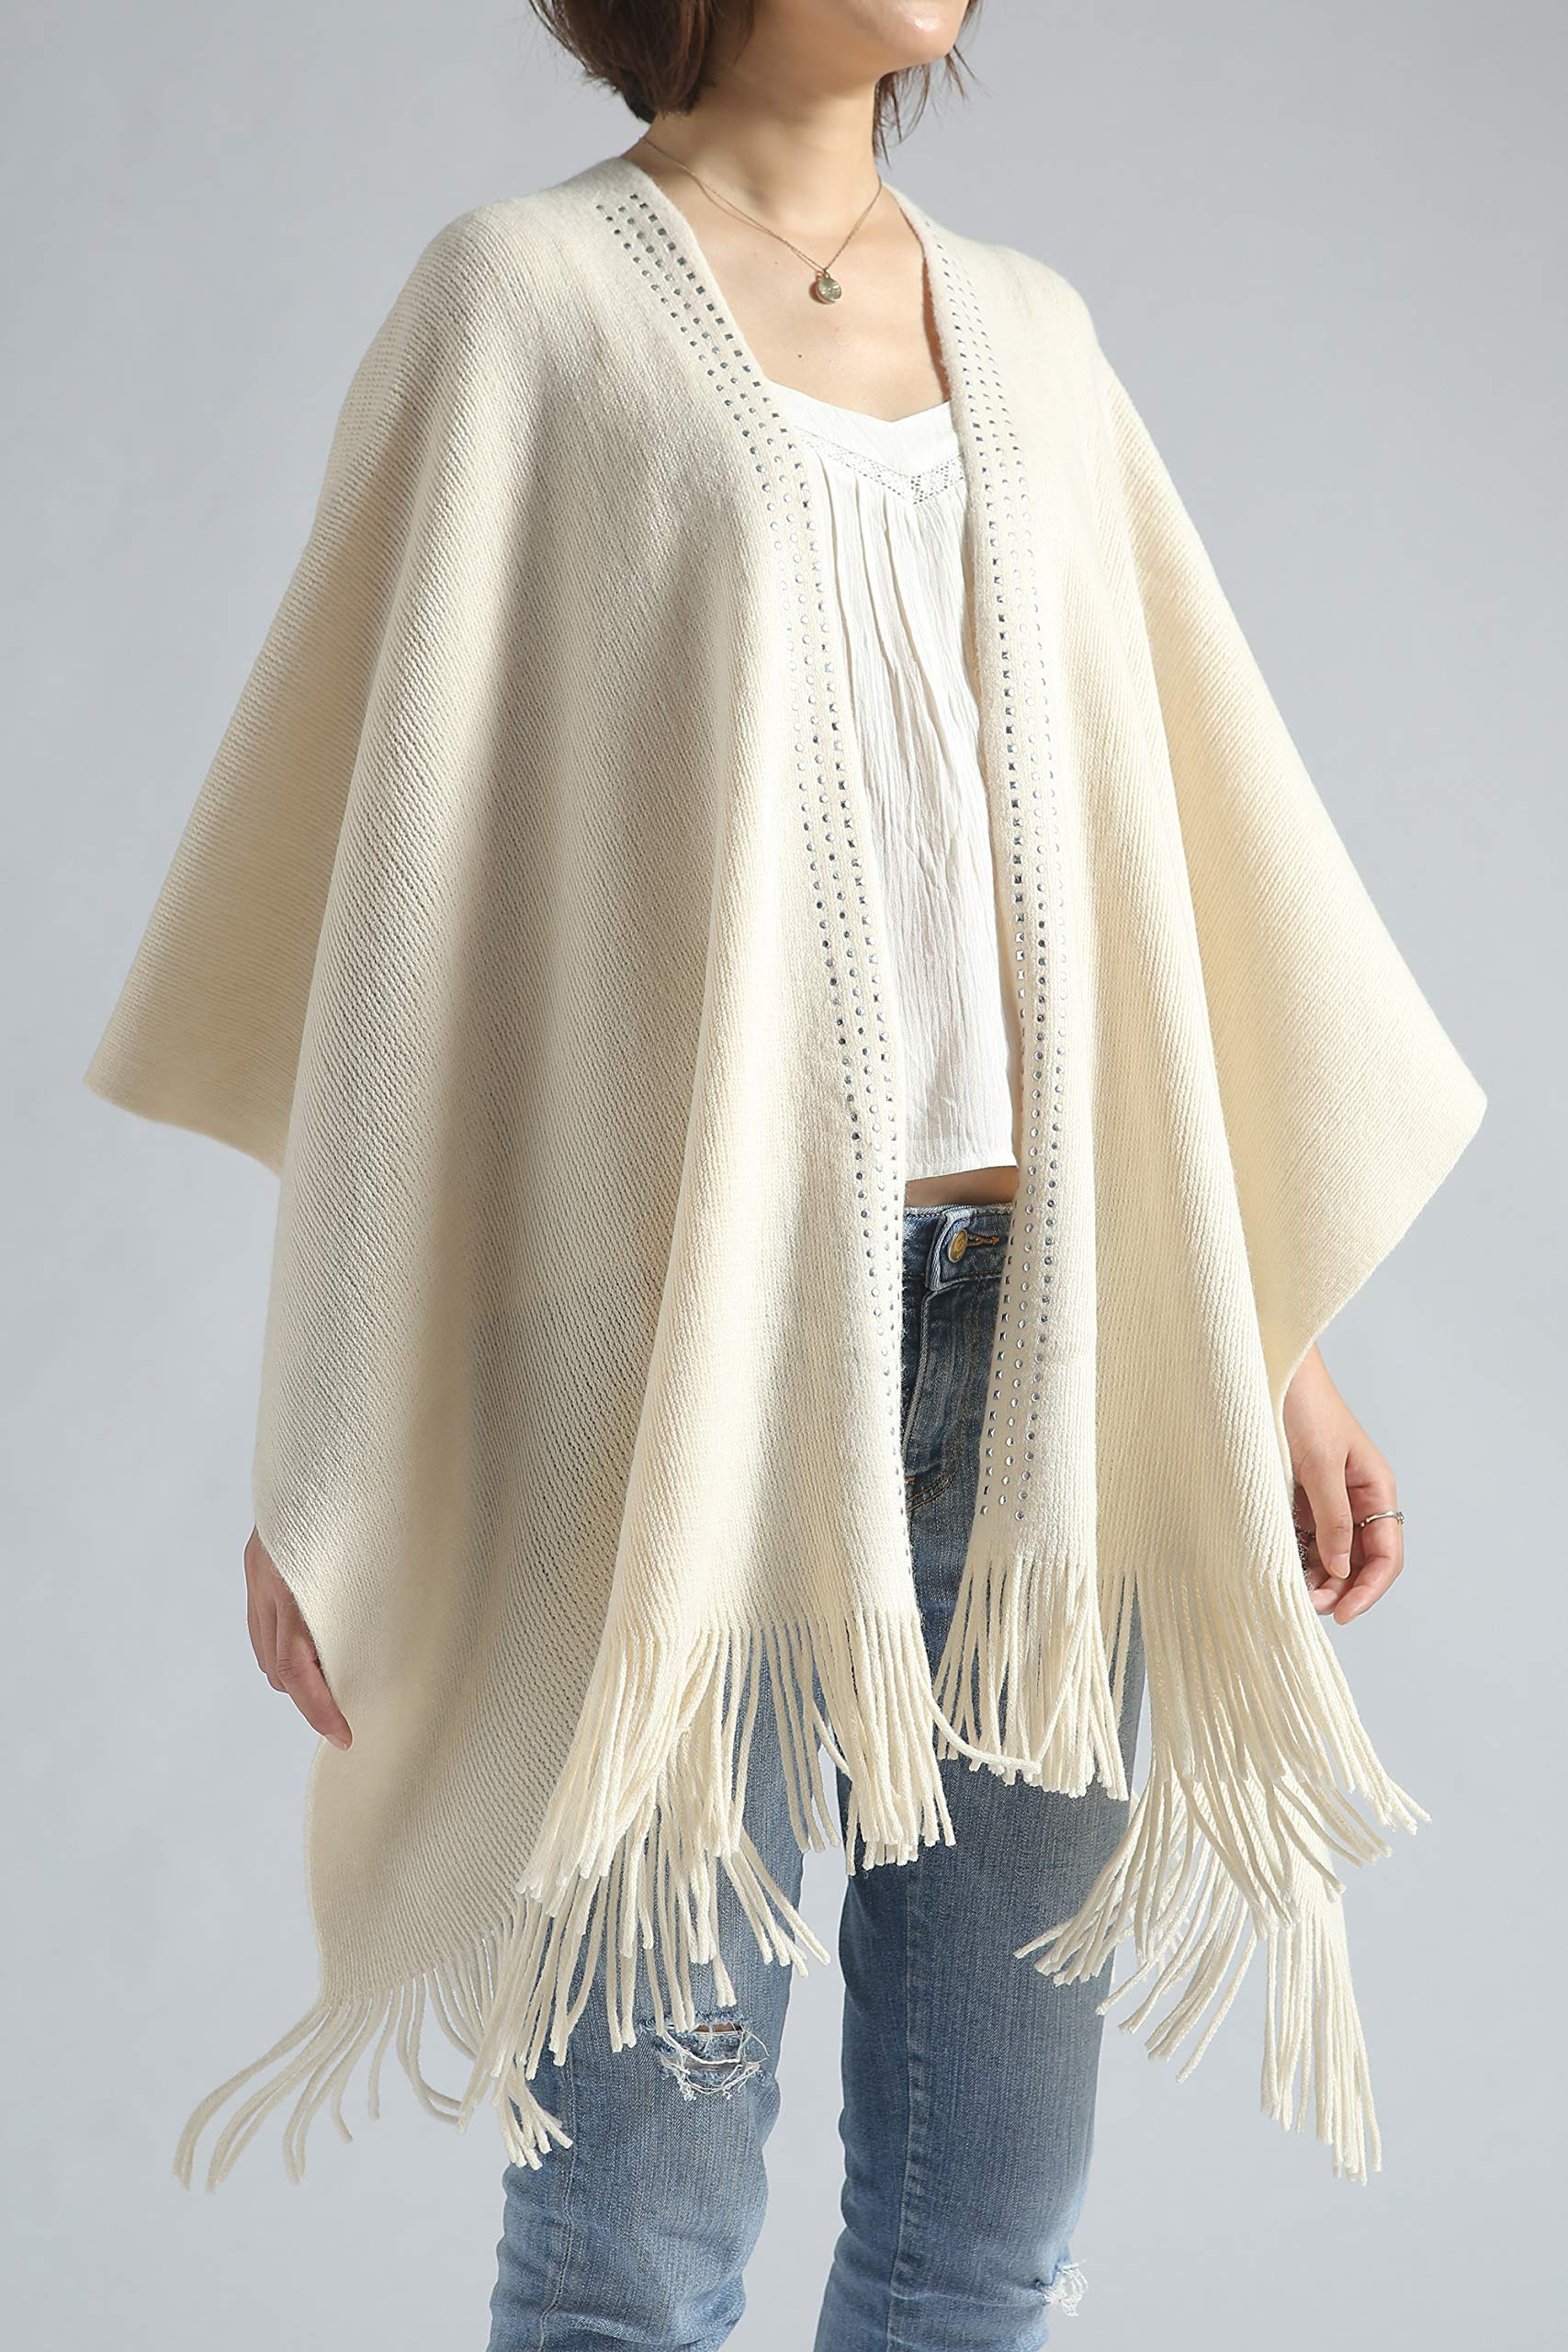 Women Poncho Shawl Cardigan Open Front Elegant Cape Wrap by Moss Rose (Image #4)